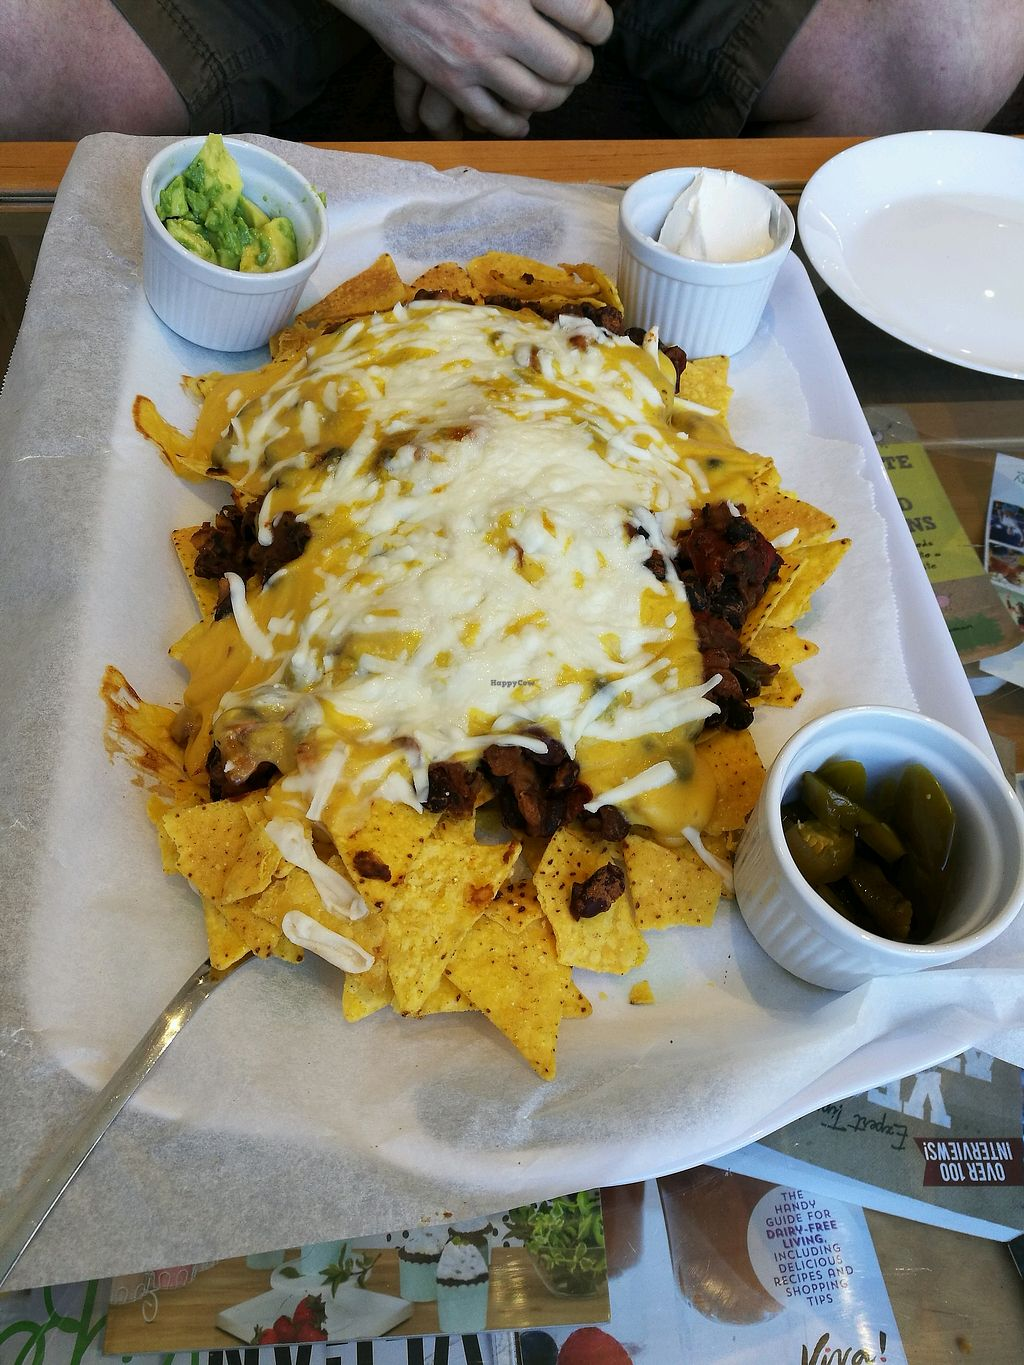 """Photo of Be The Change  by <a href=""""/members/profile/Waldyvgun"""">Waldyvgun</a> <br/>sharing nachos for 2 <br/> April 20, 2018  - <a href='/contact/abuse/image/117493/388753'>Report</a>"""